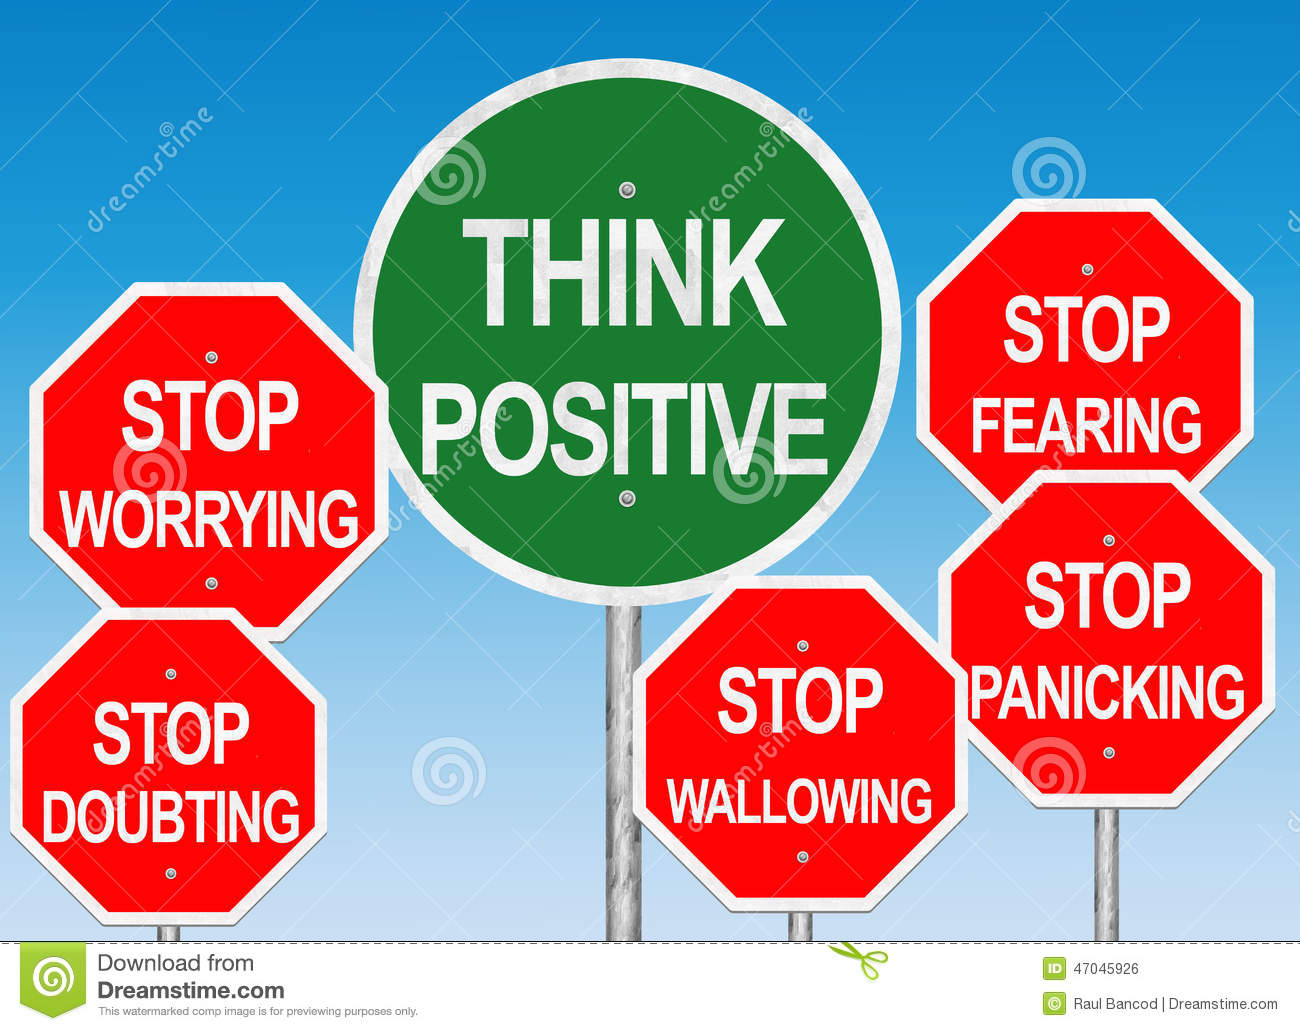 think positive road sign stock illustration image 47045926